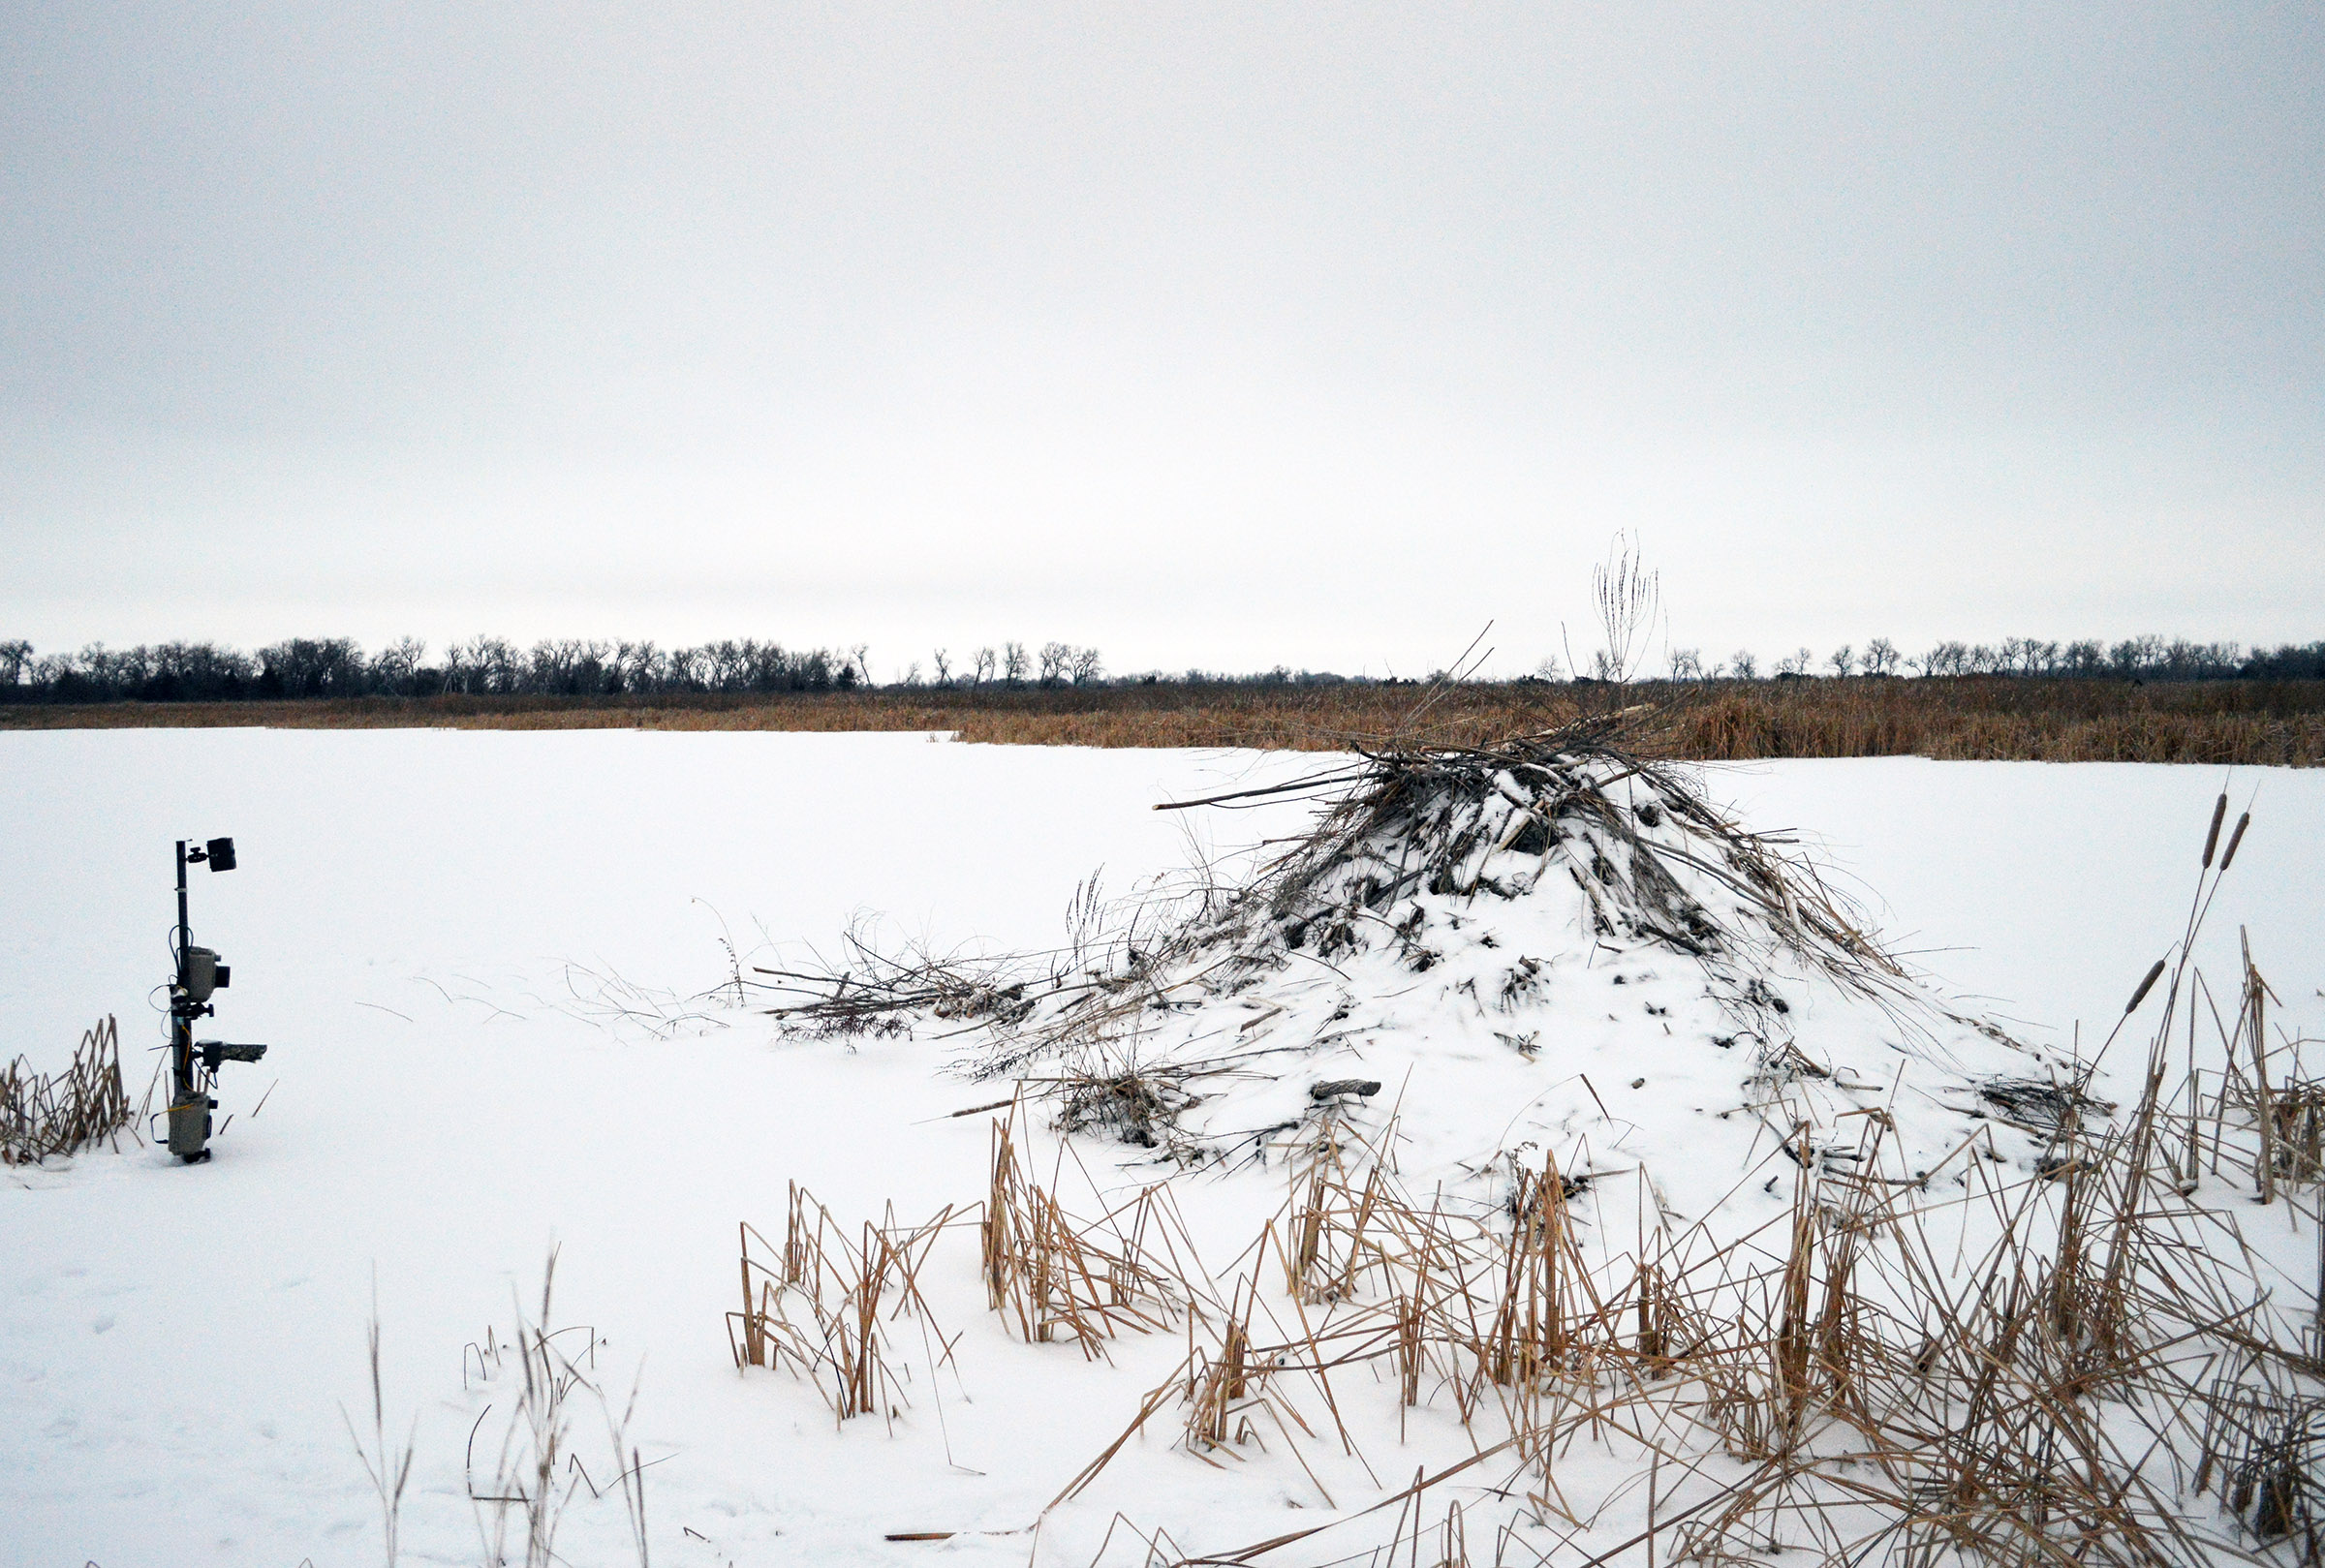 Study site for North American beaver (Castor canadensis) behavior analysis